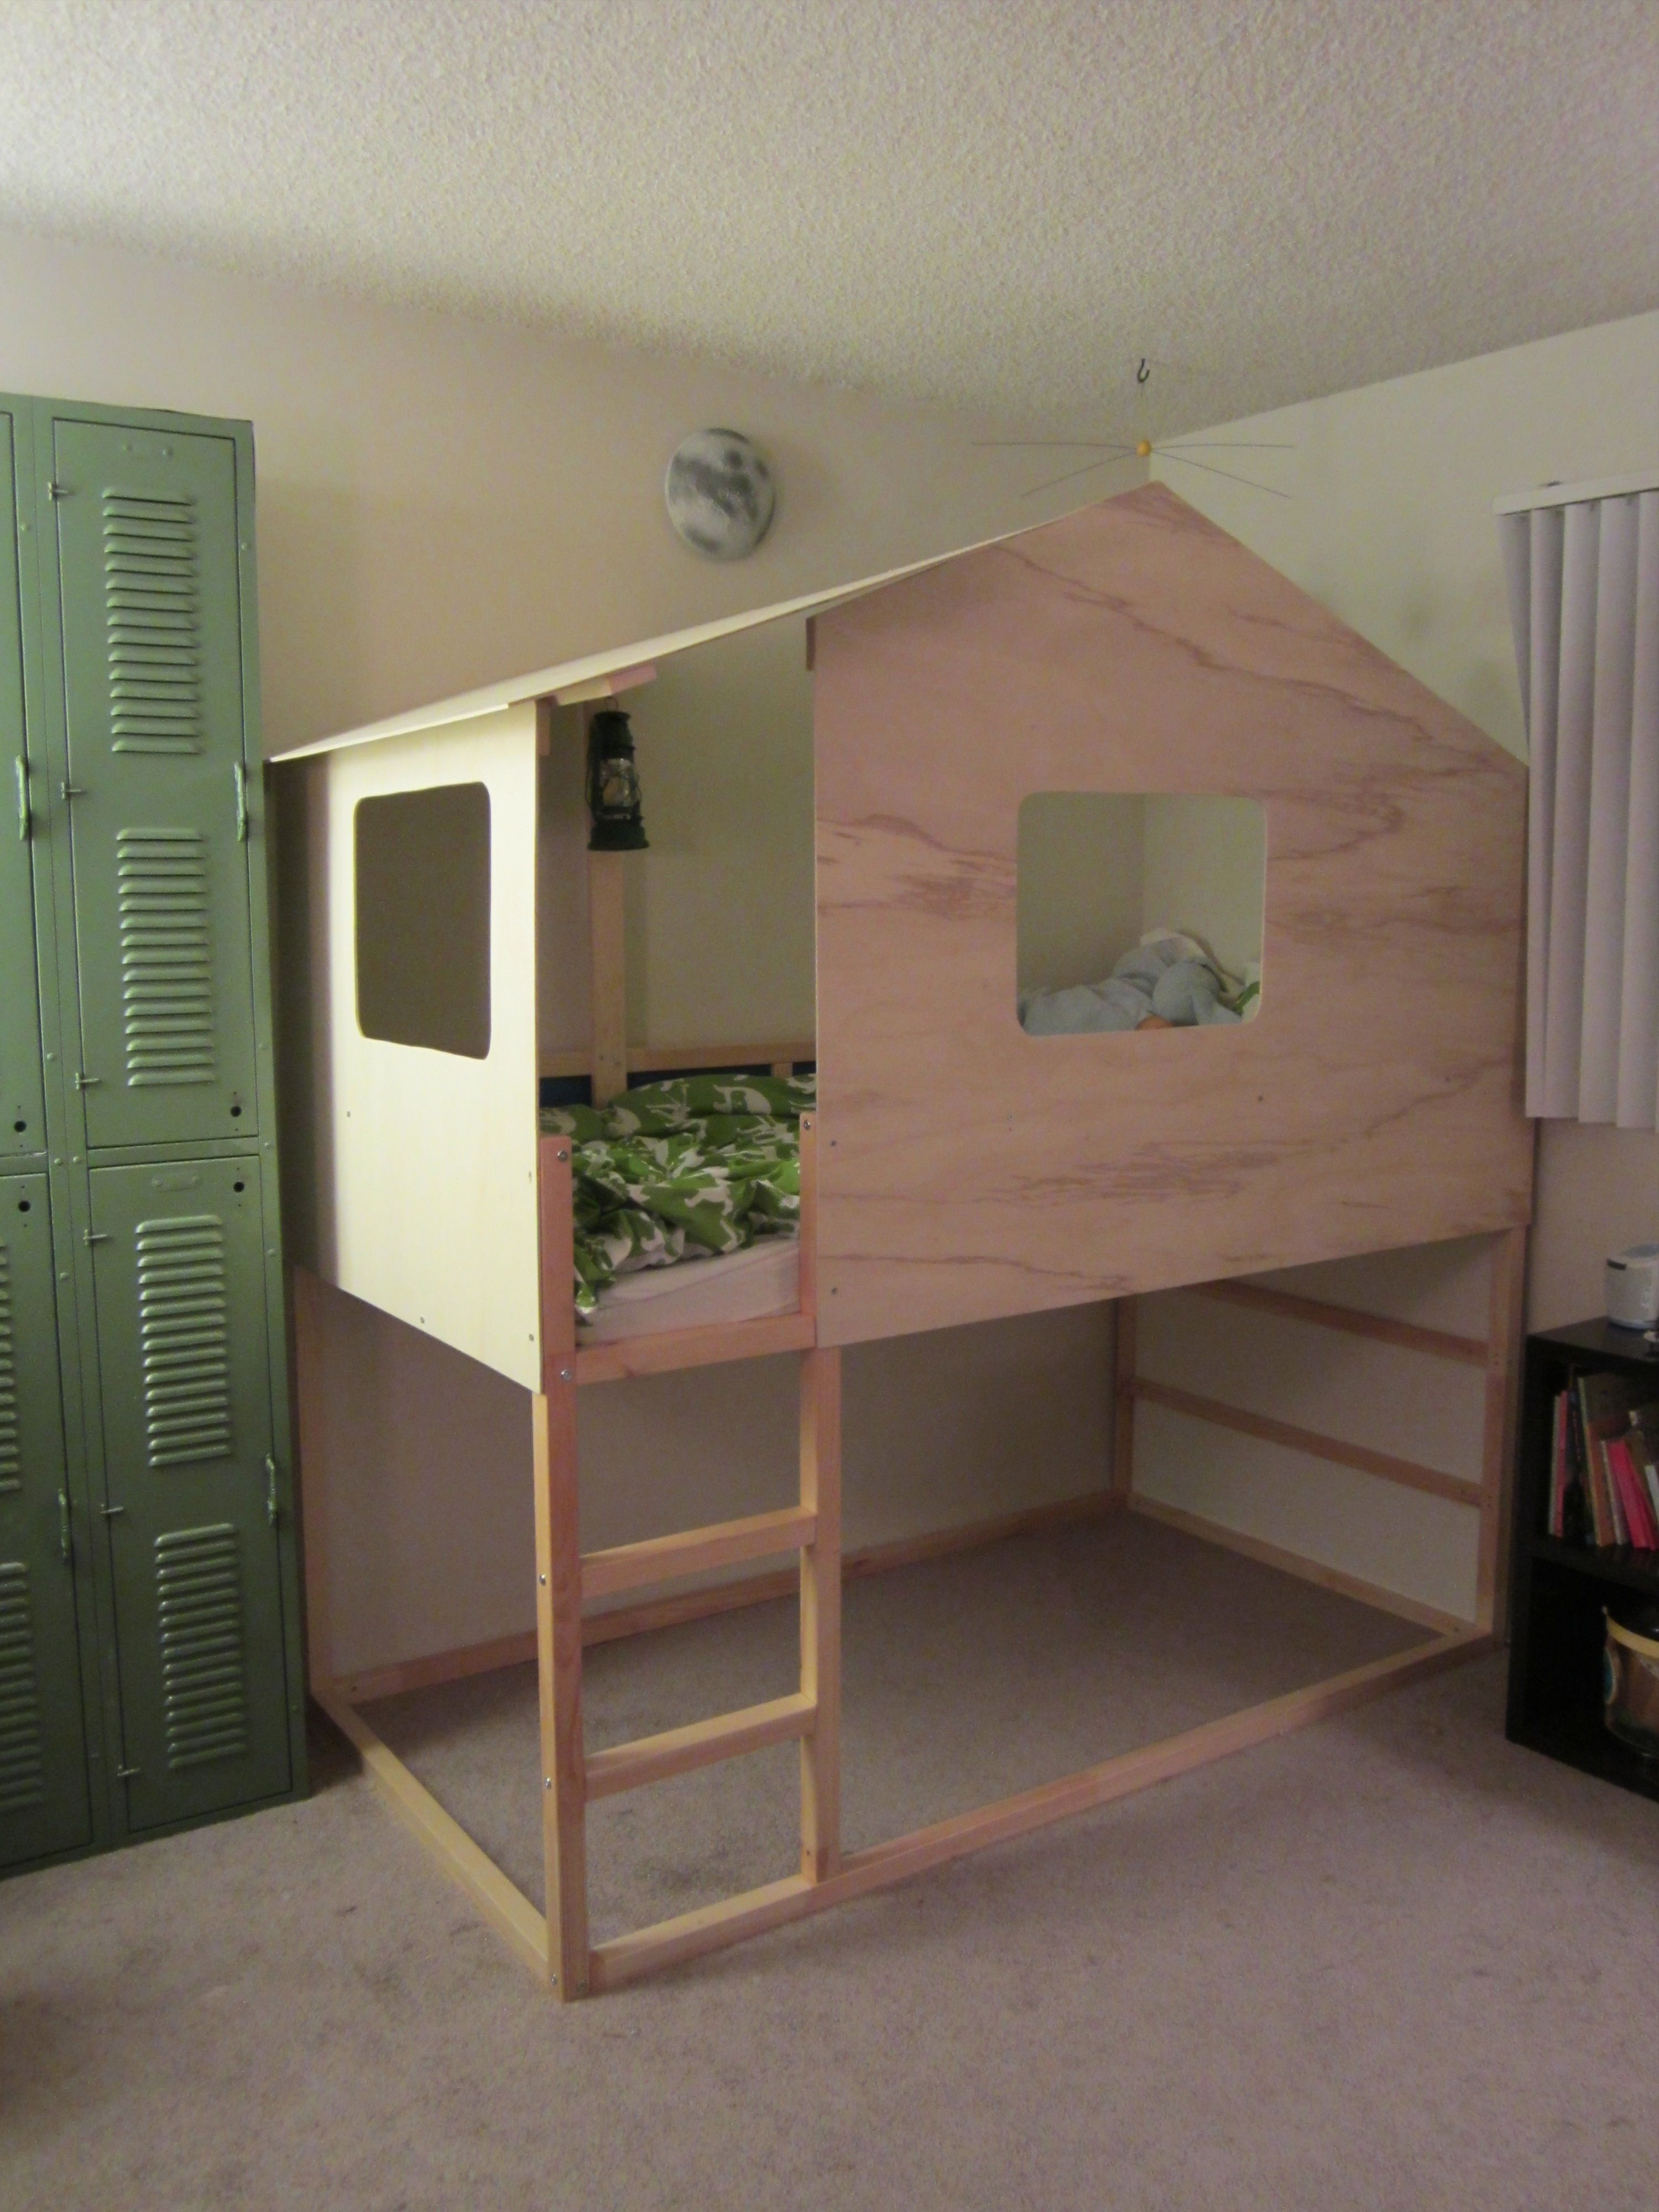 ikea hack: kura bed into modern cabin | home | pinterest | ikea